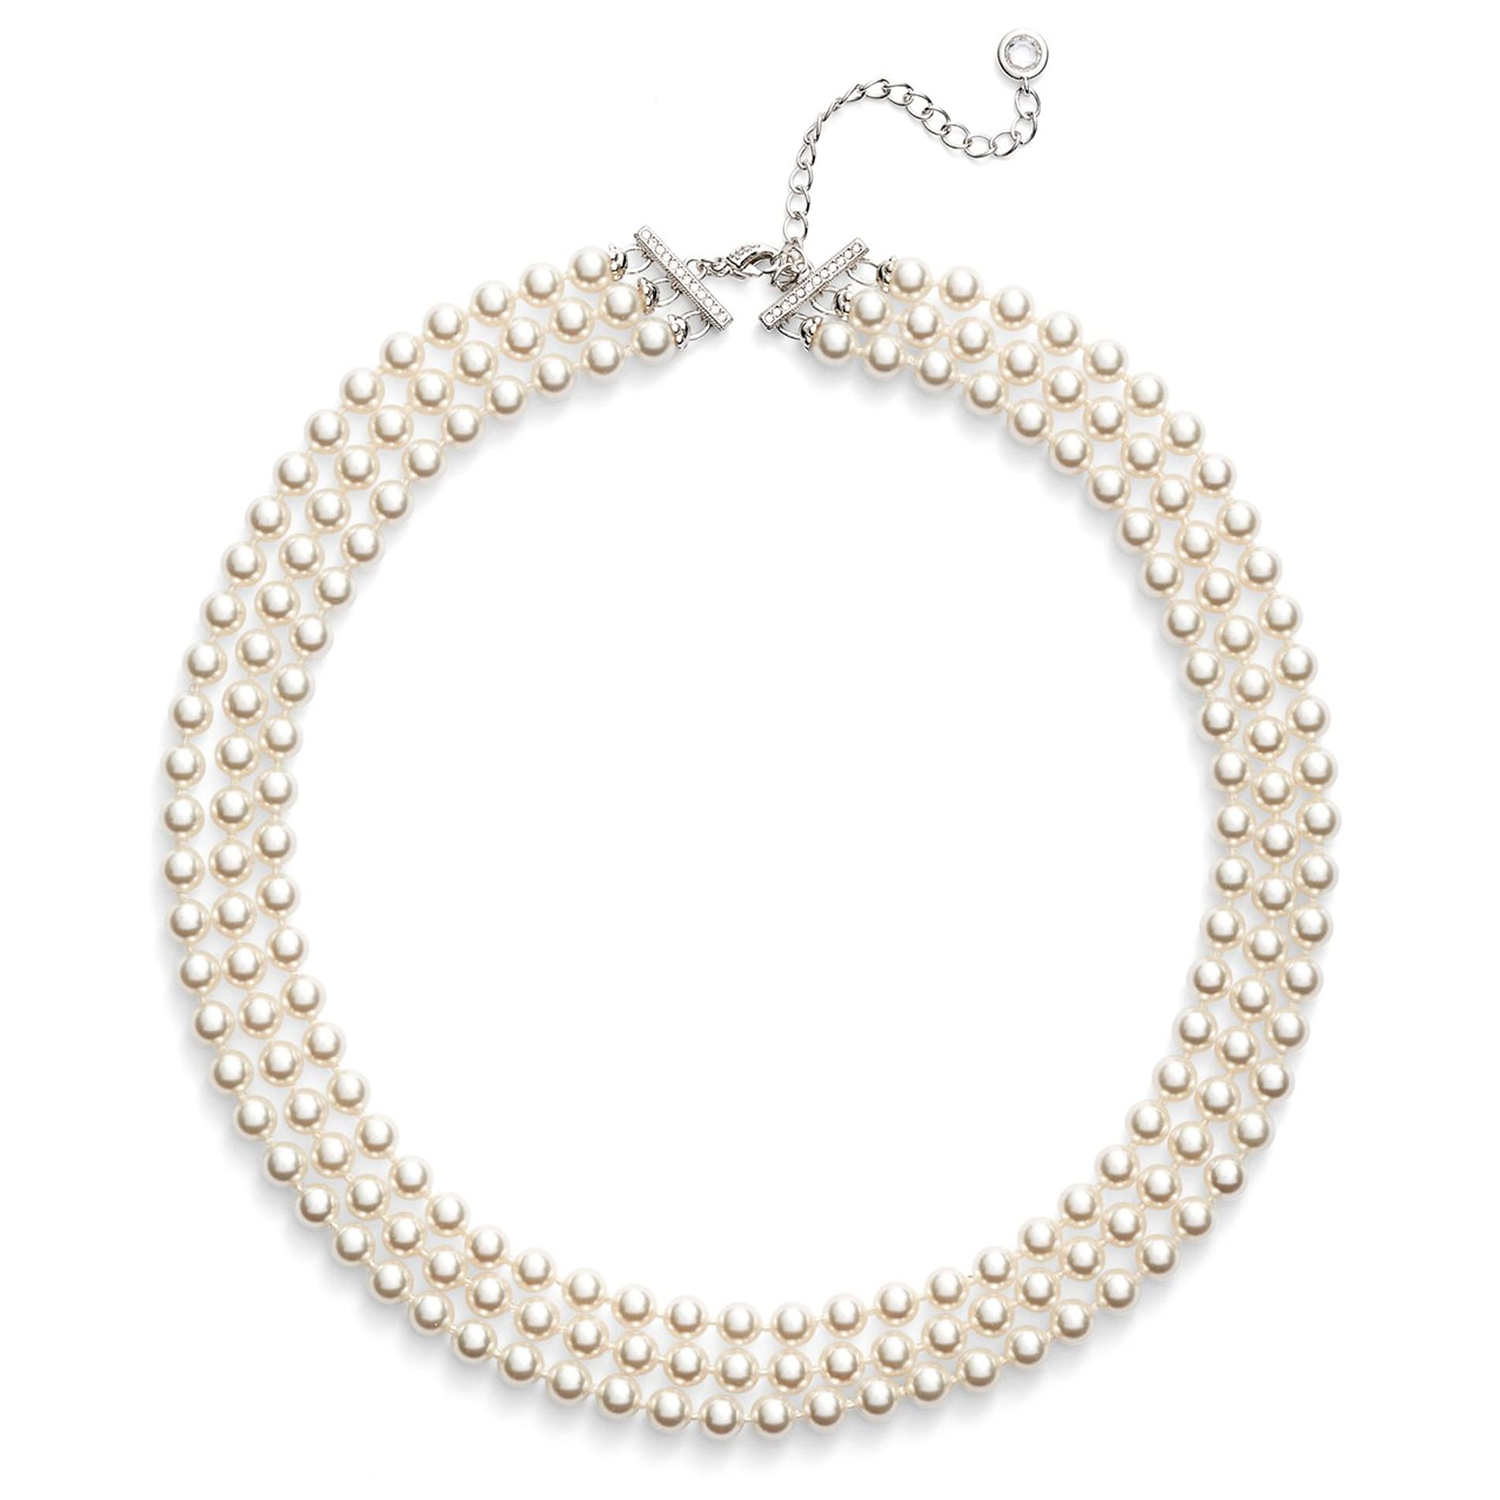 Nadri Multistrand Imitation Pearl Necklace